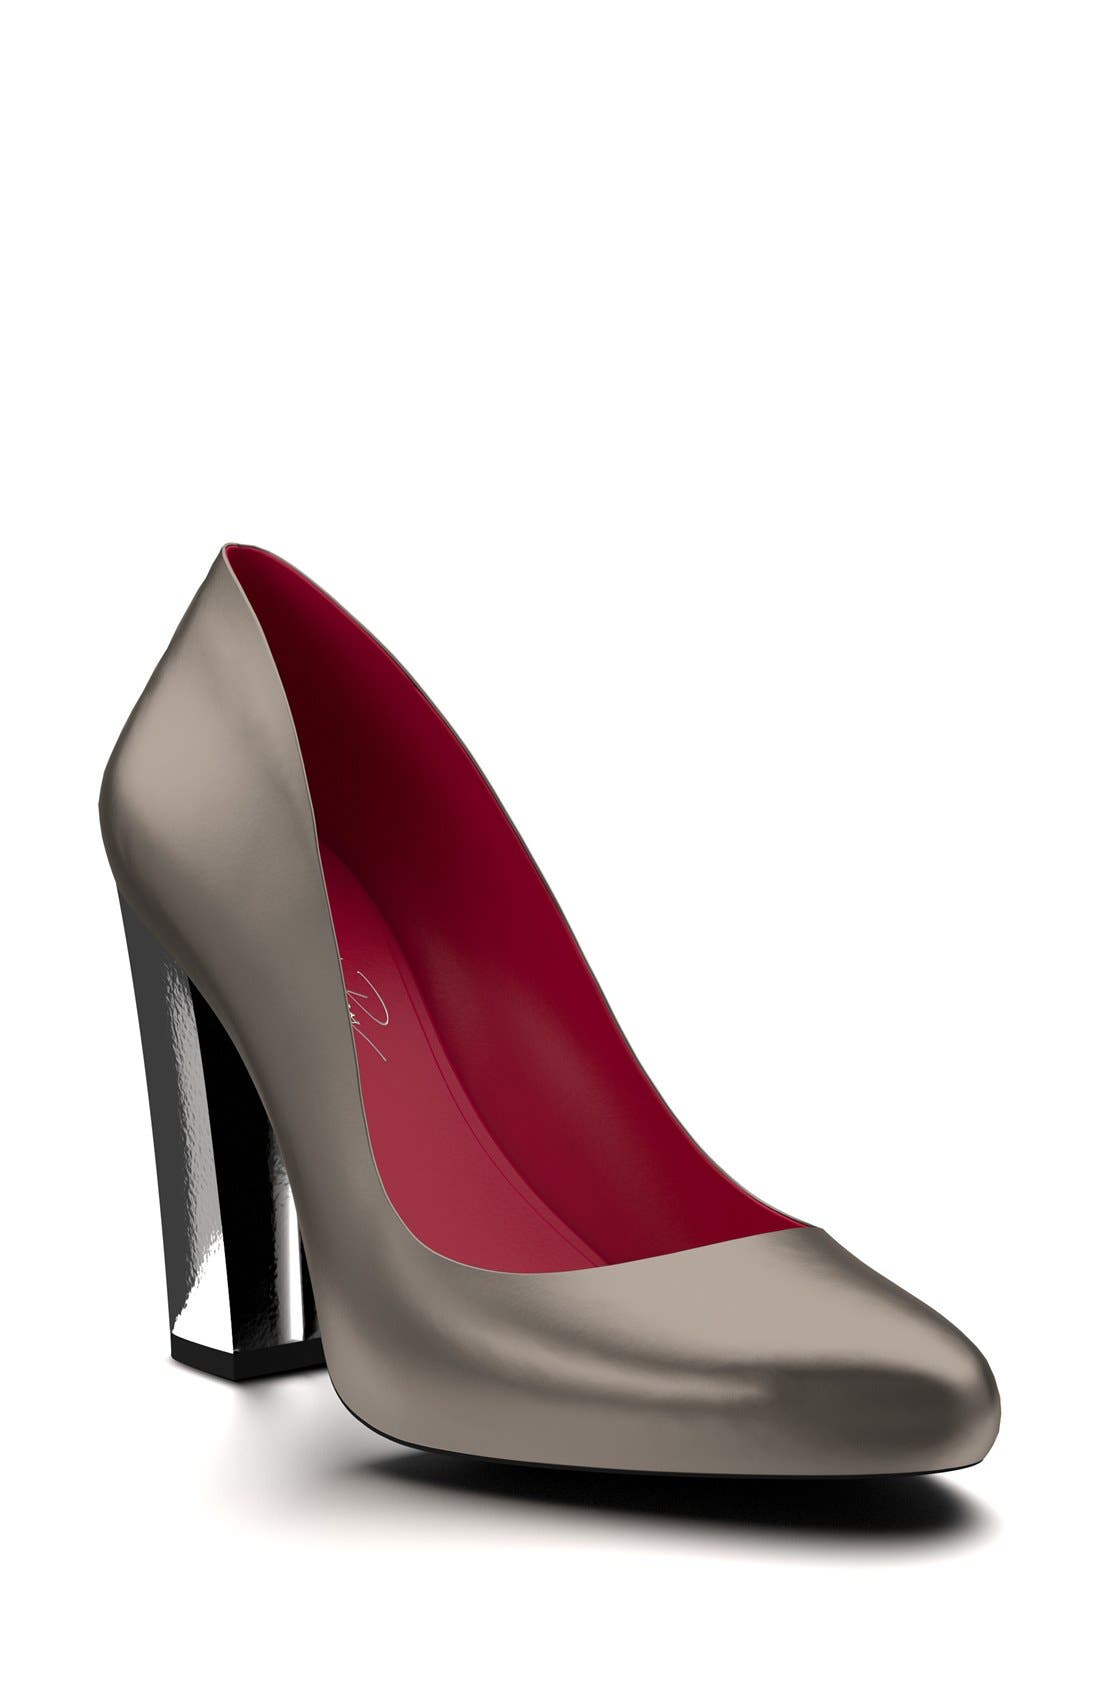 Alternate Image 1 Selected - Shoes of Prey Round Toe Pump (Women)